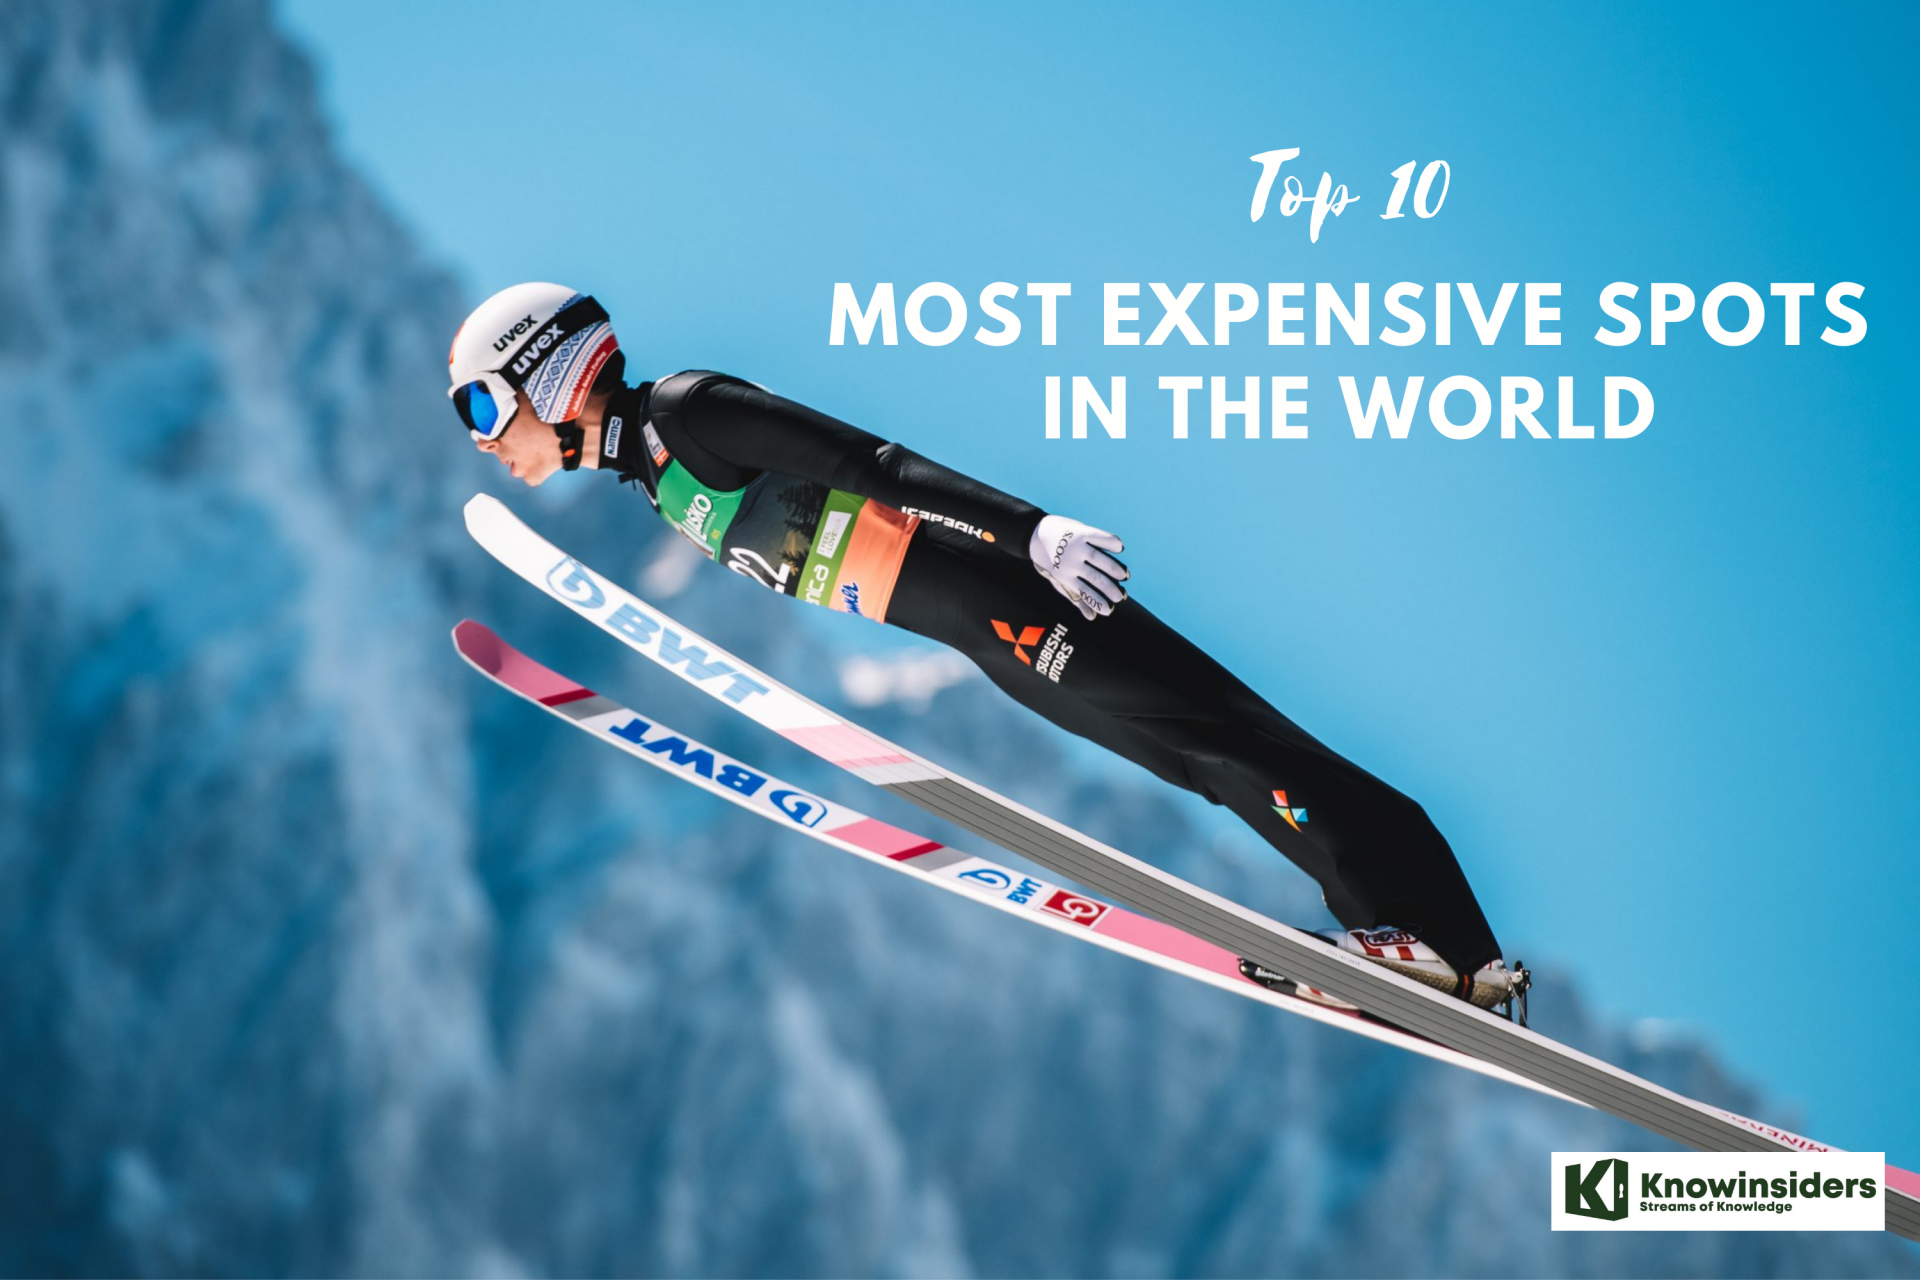 Top 10 Most Expensive Sports in the World